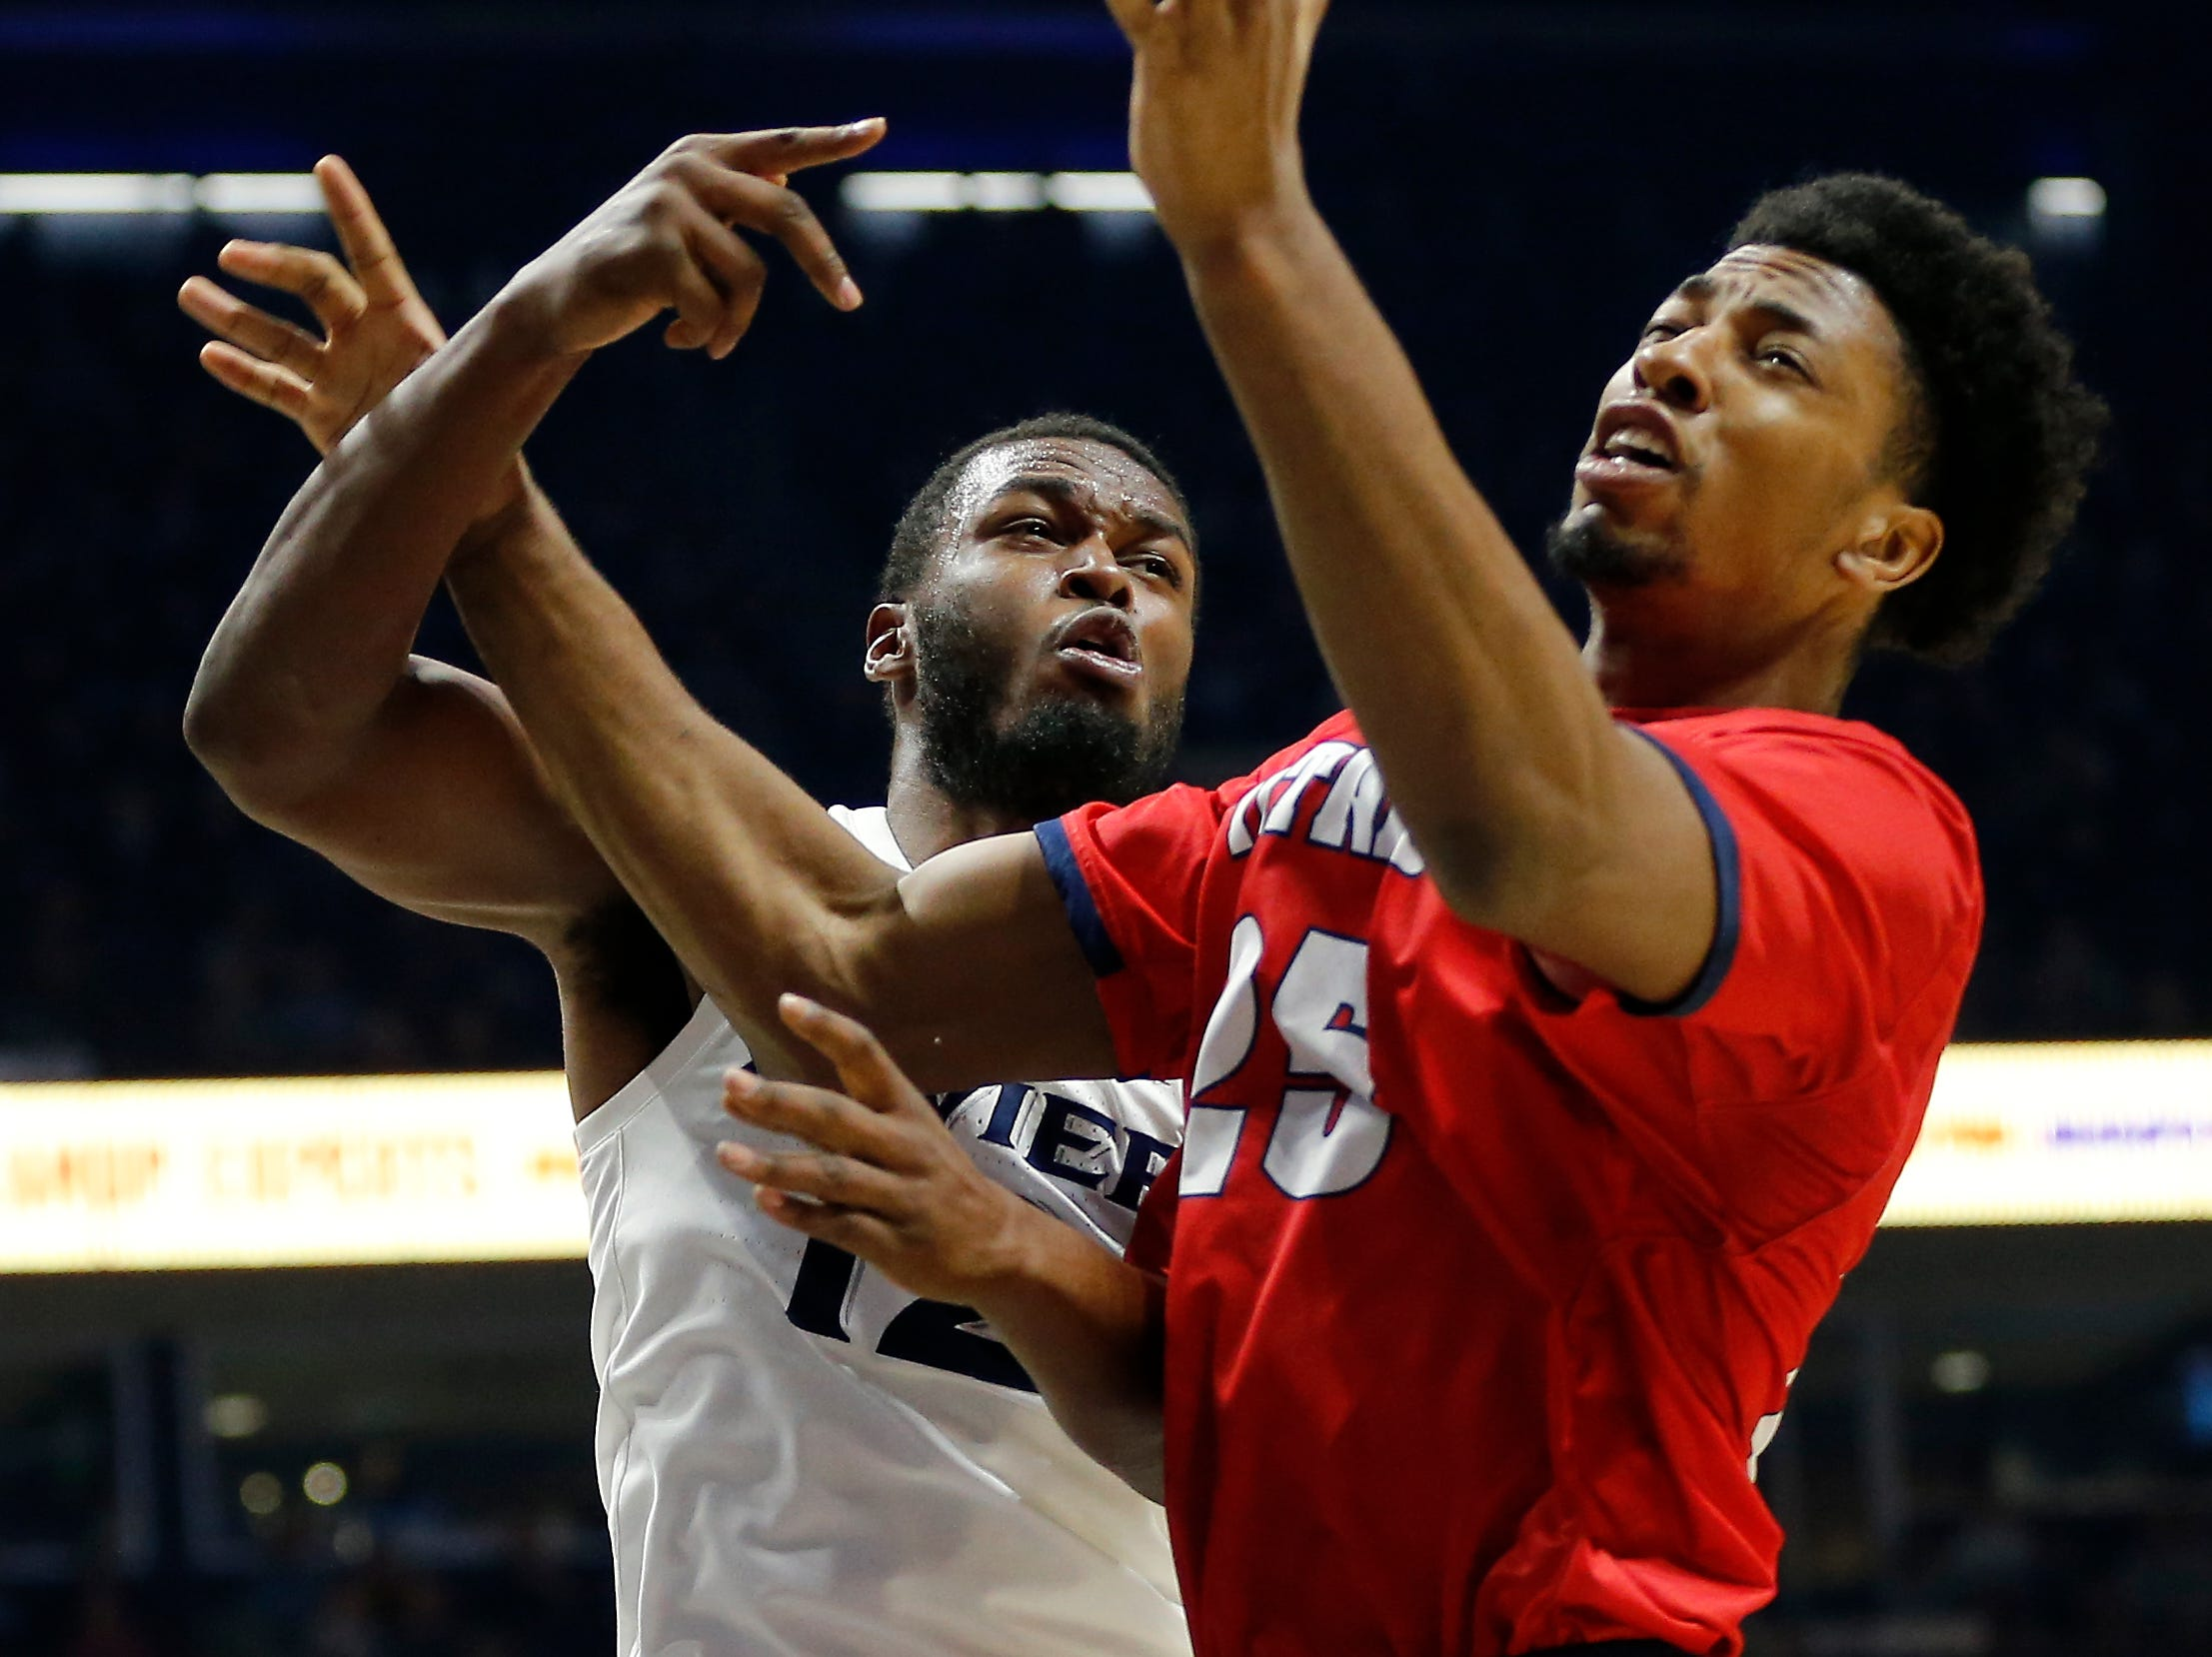 Xavier Musketeers forward Dontarius James and Detroit Mercy forward Gerald Blackshear Jr. collide going for a rebound in the first half.